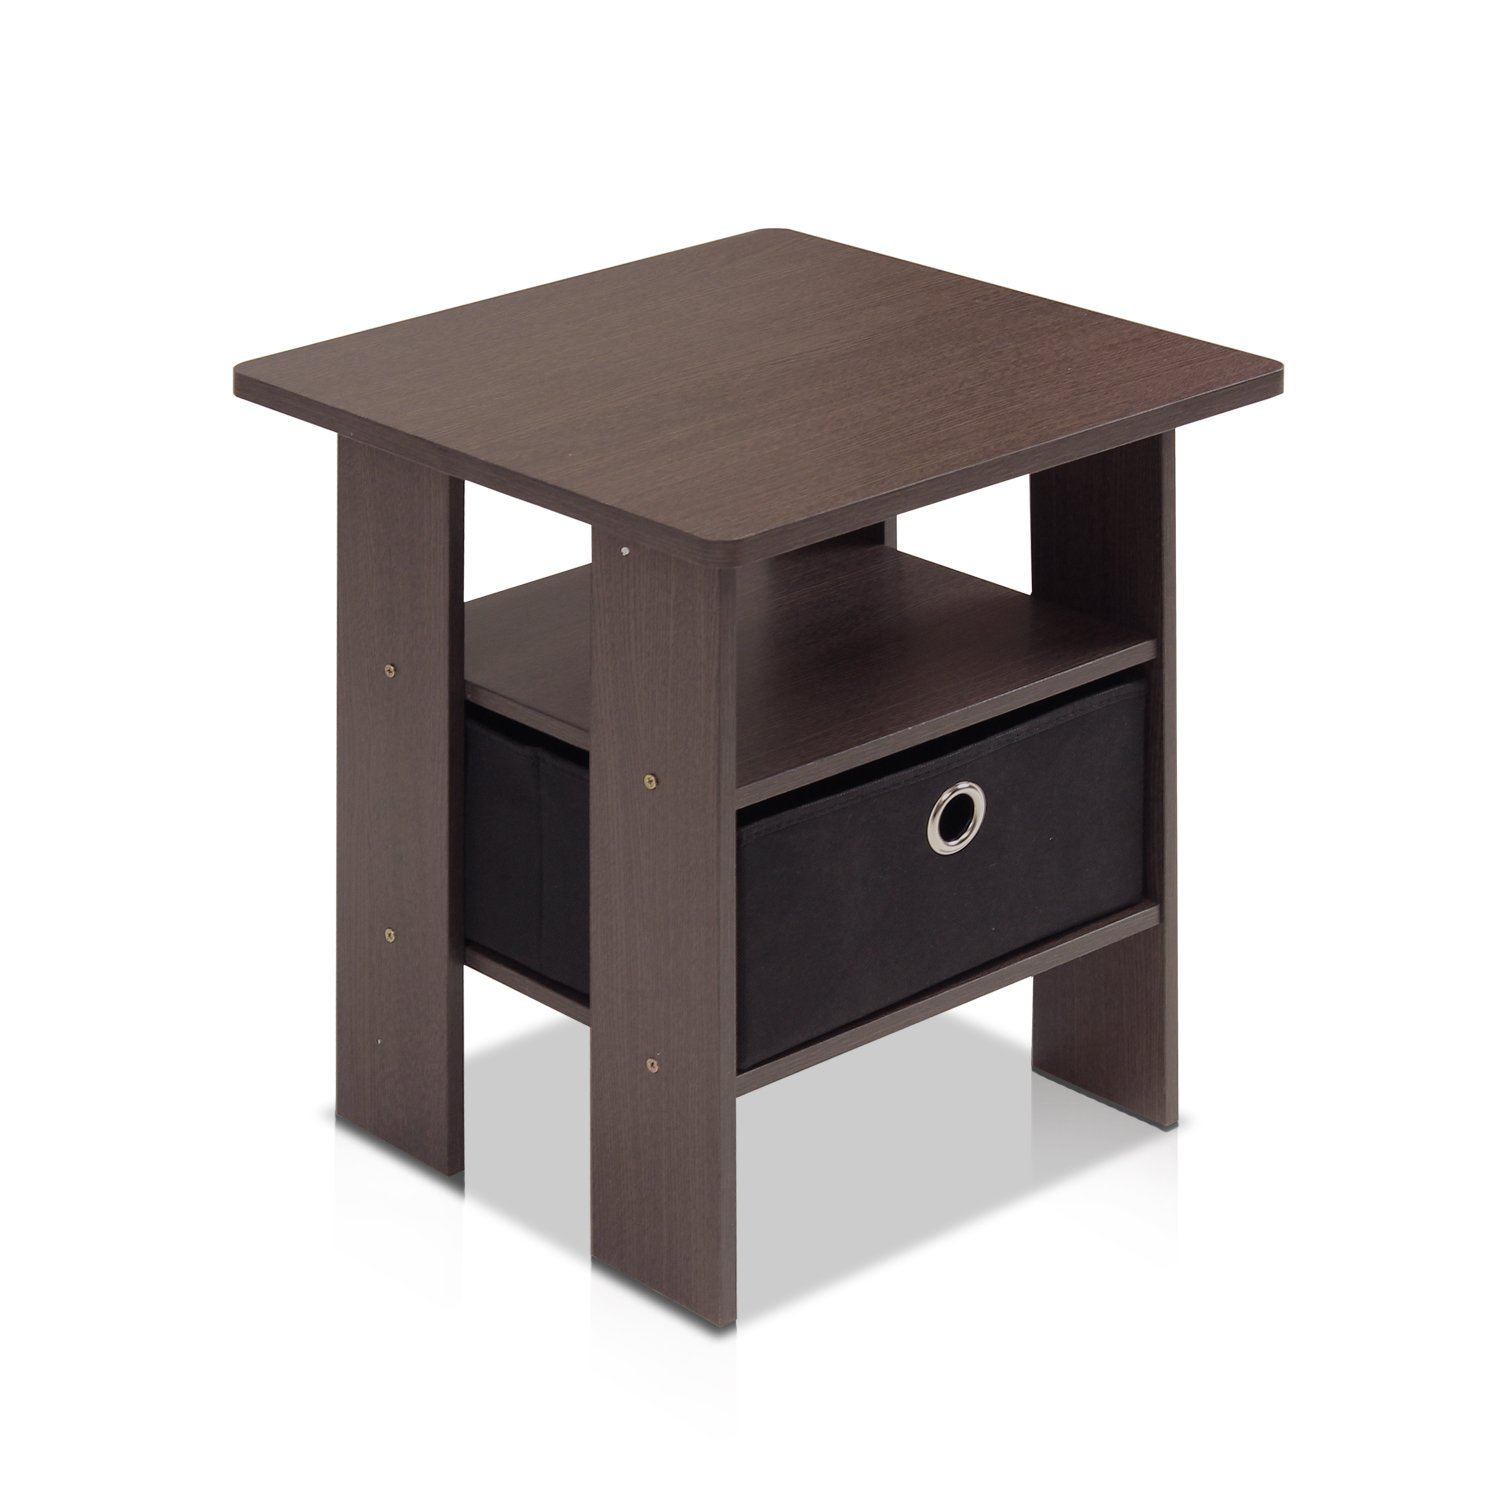 Furinno 11157DBR/BK End Table Bedroom Night Stand w/Bin Drawer, Dark Brown/Black